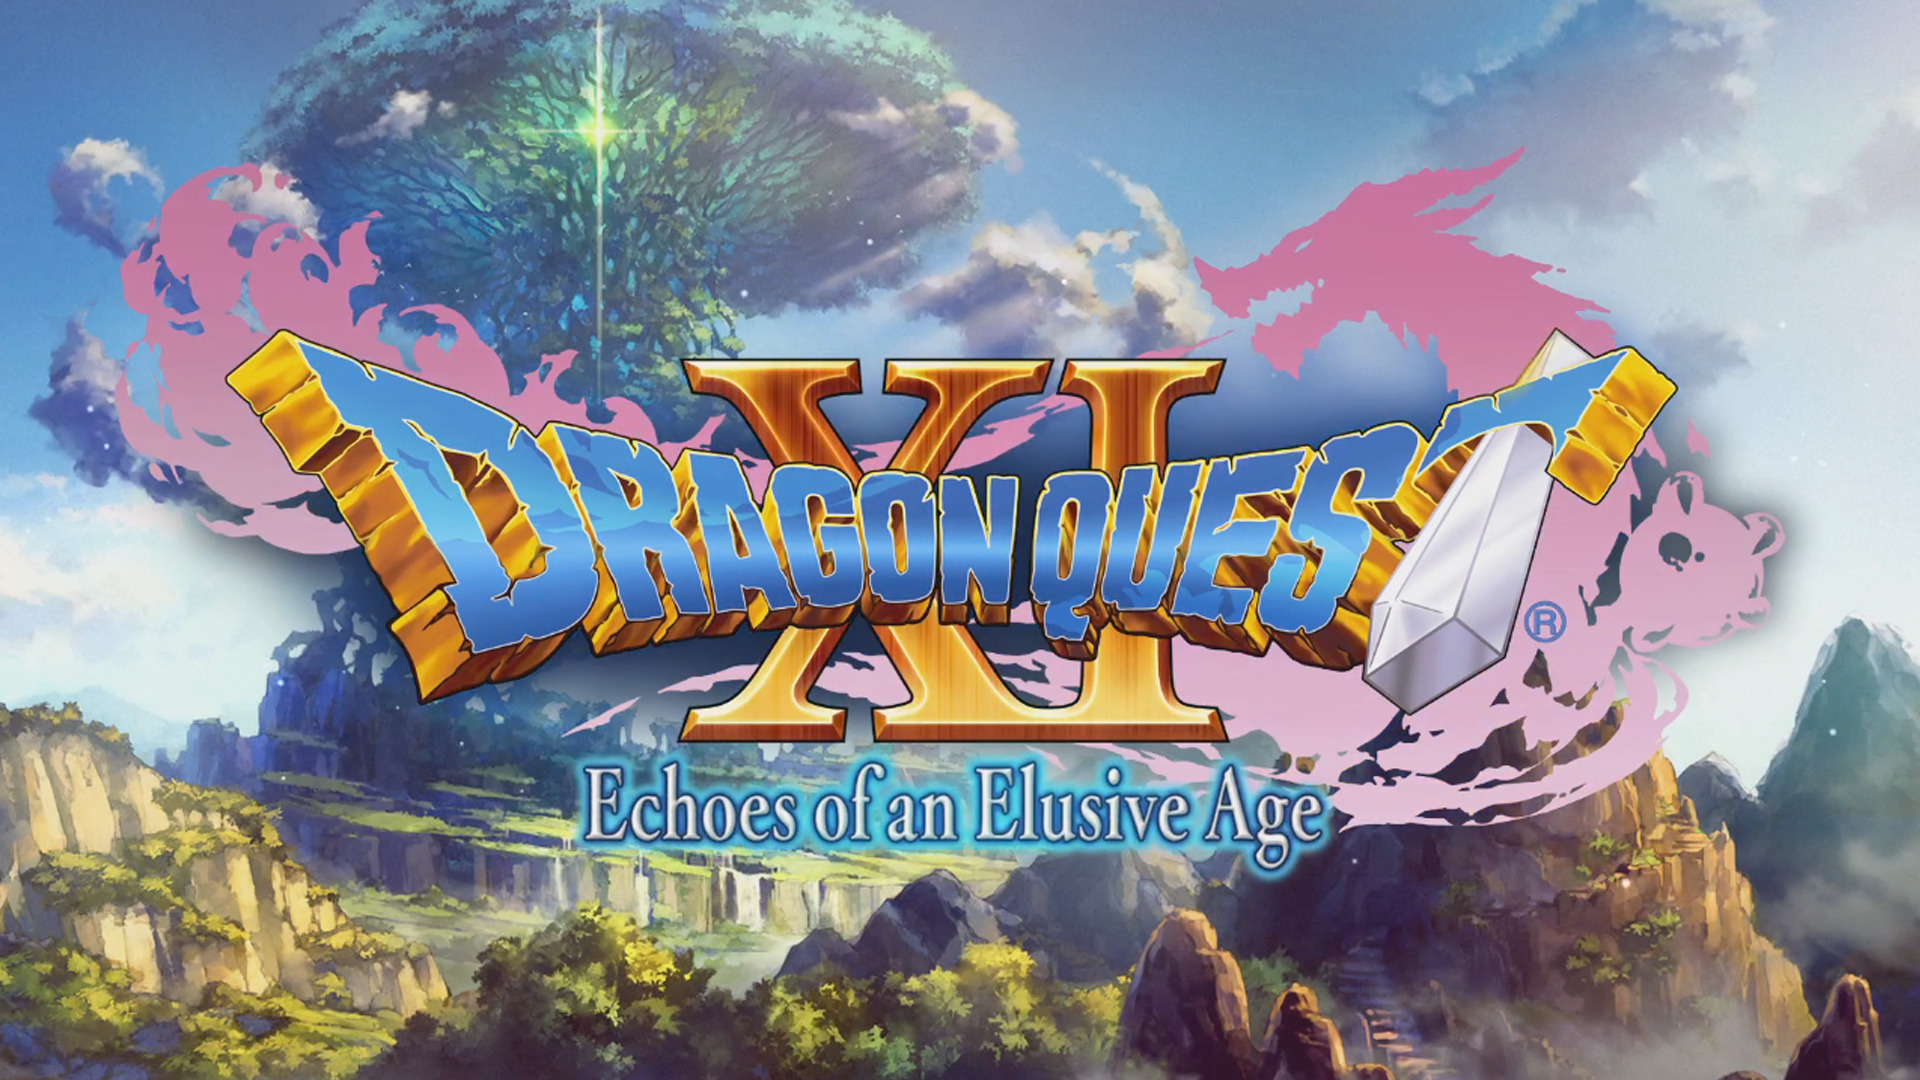 Dragon Quest Xi Echoes Of An Elusive Age Heads To The West